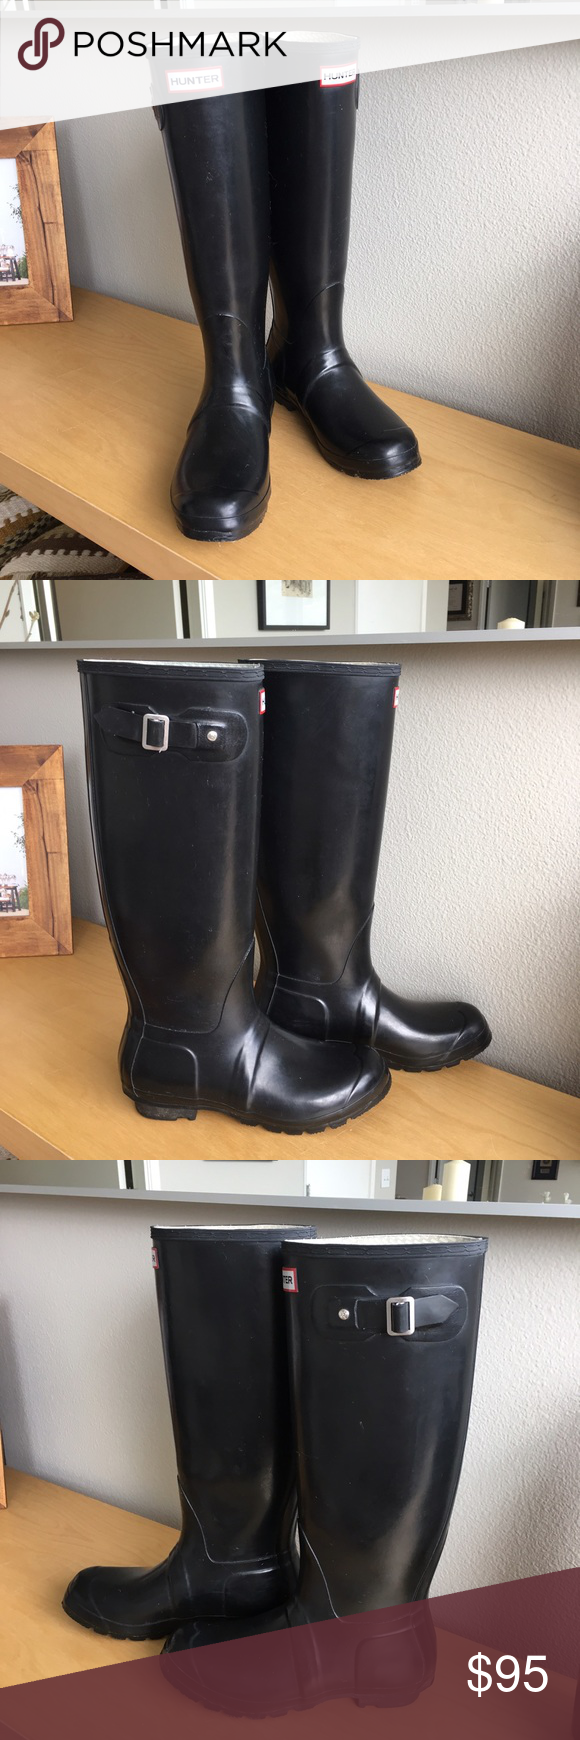 Hunter Black Tall sz 8 Gently worn, excellent condition! I'm a 9 and these are just too small for me. My loss, your gain! Hunter Shoes Winter & Rain Boots